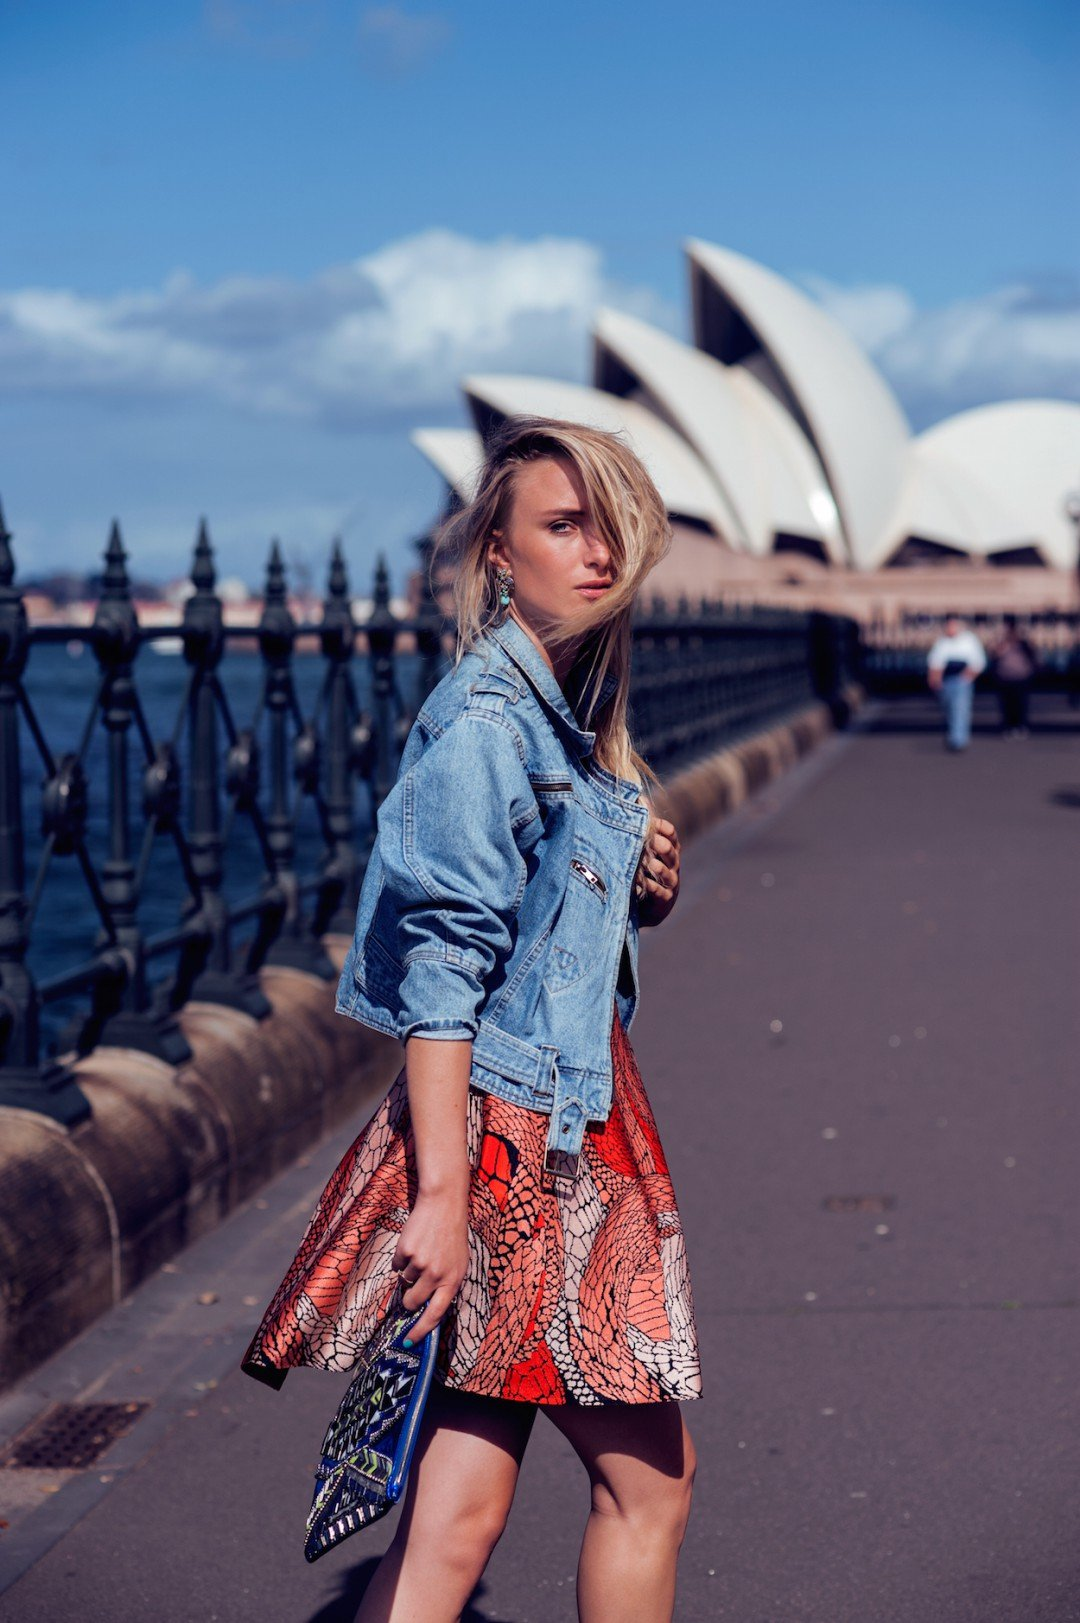 sydney fashion blogger